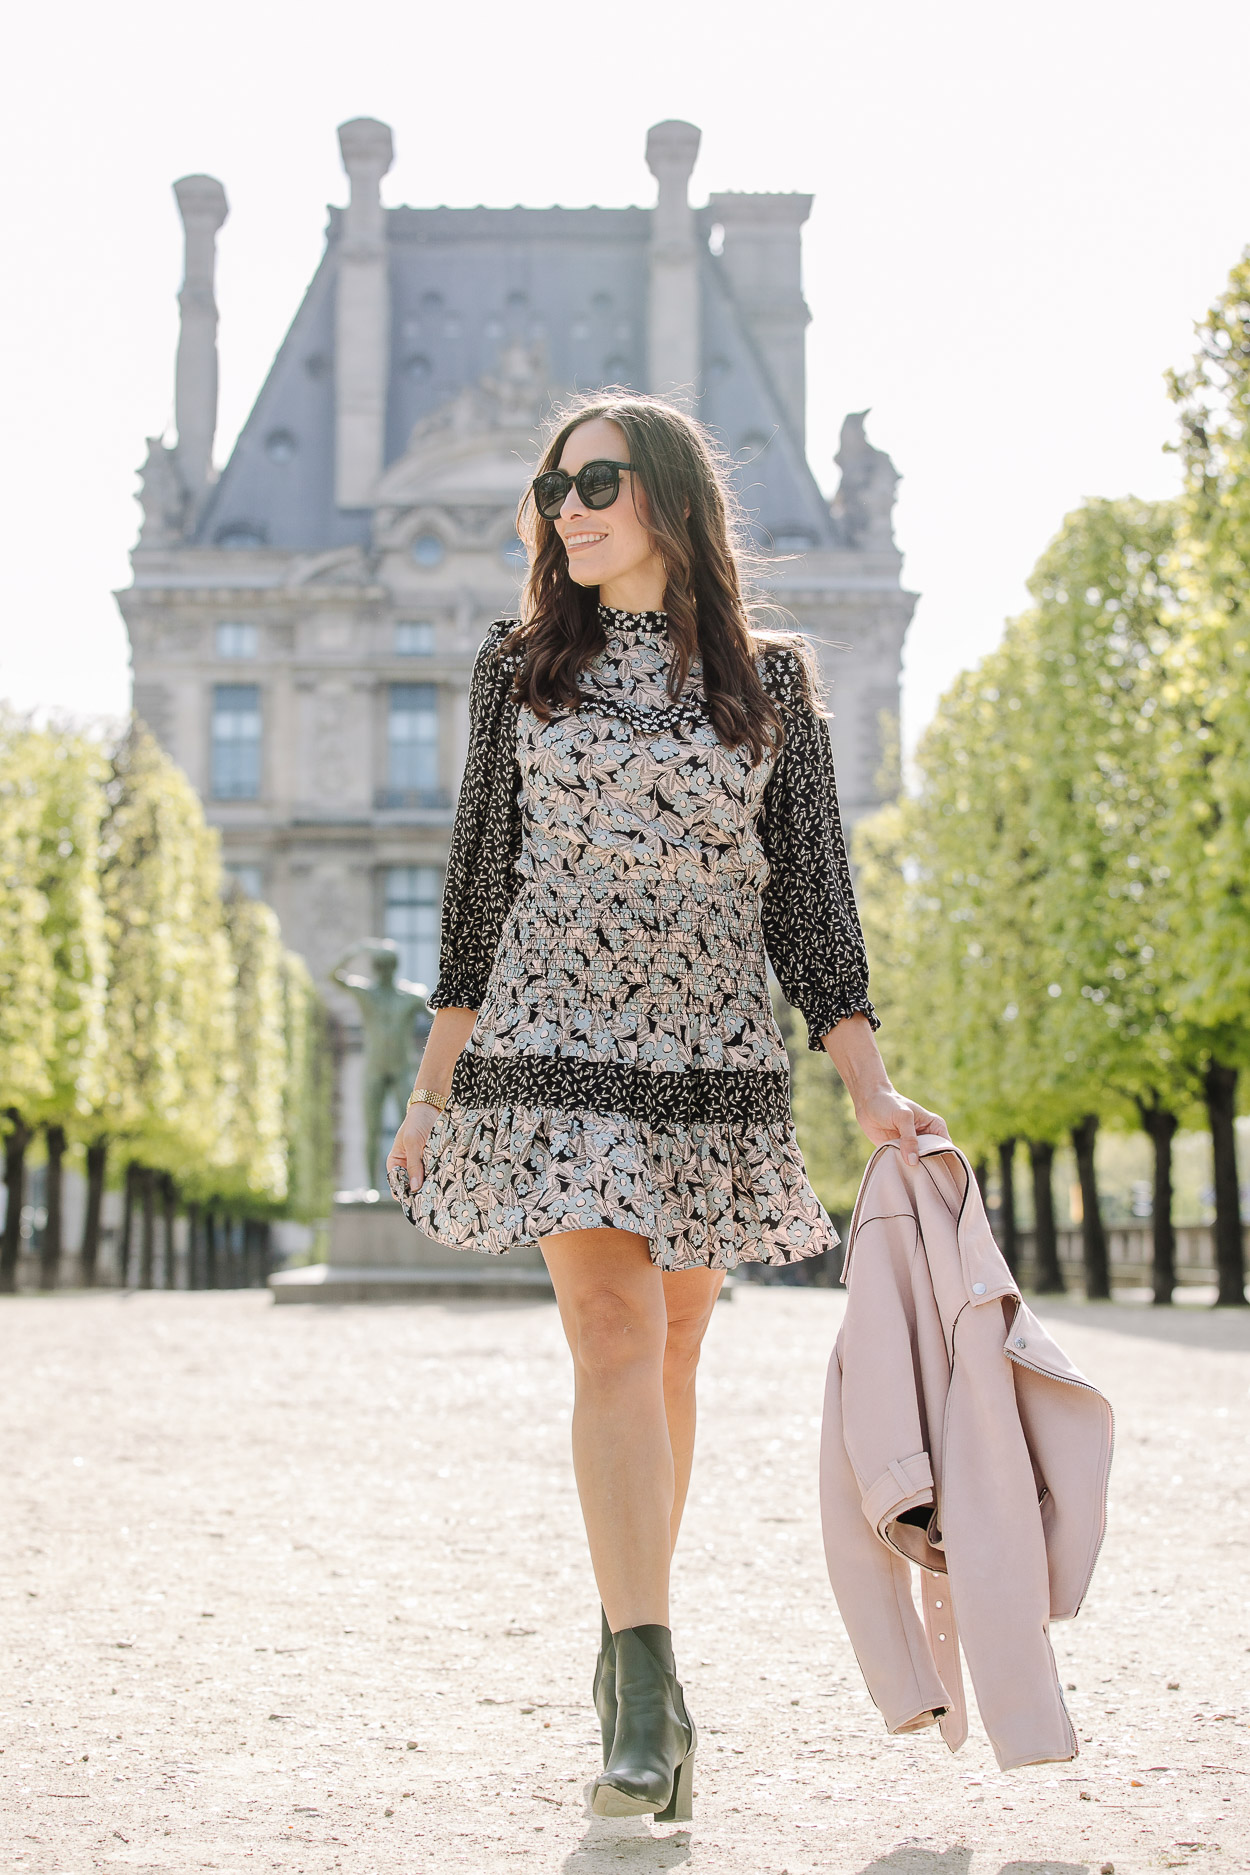 Best silk floral dress for Spring is the Rebecca Taylor Bijou Patchwork dress as worn by blogger Amanda of A Glam Lifestyle at the Tuileries Garden in Paris